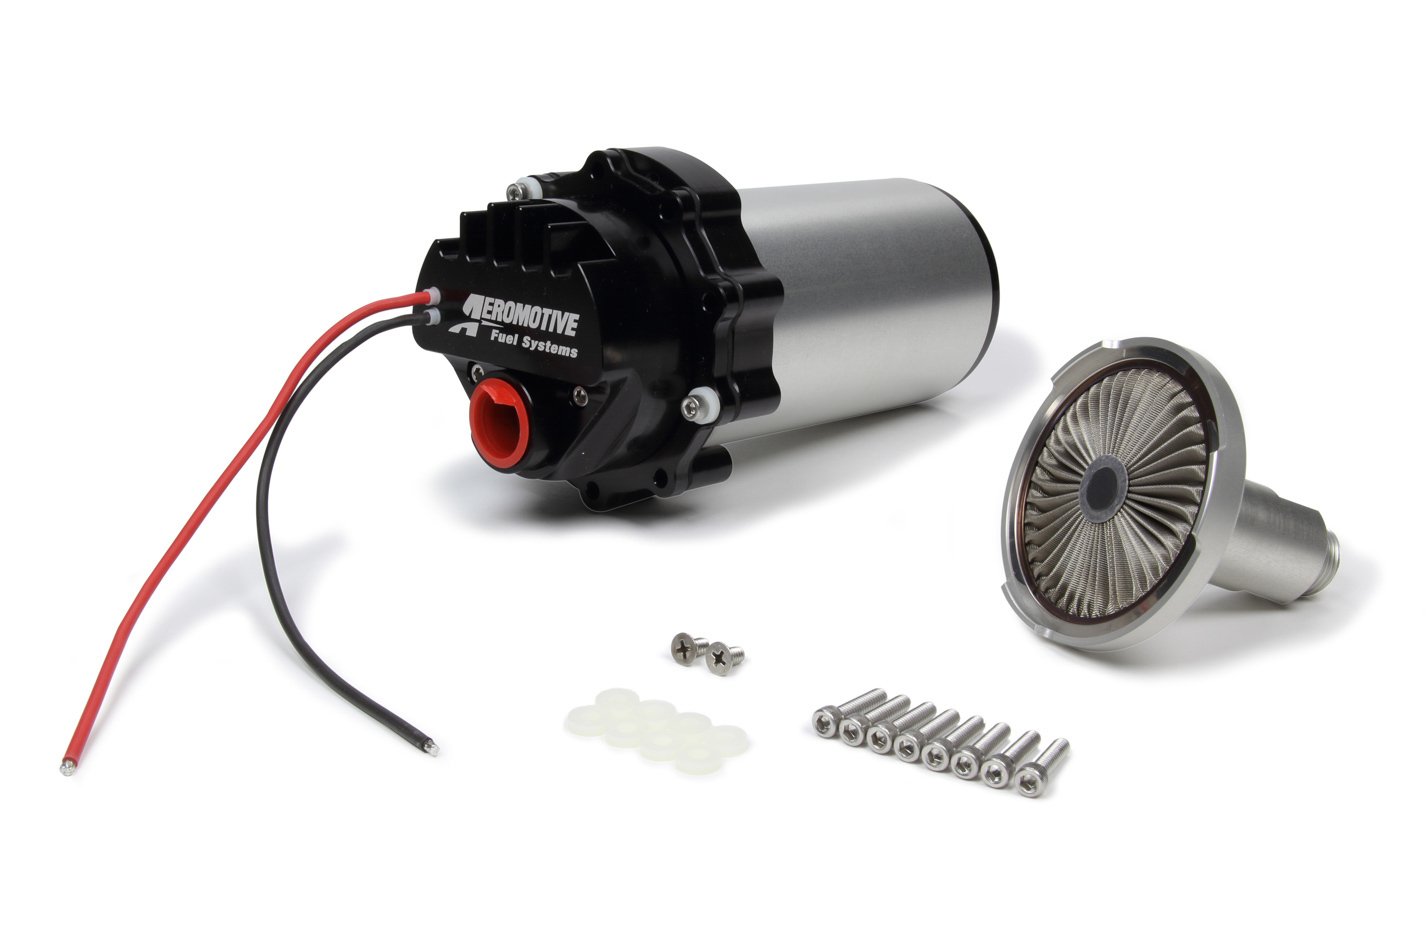 Aeromotive 18023 Fuel Pump, A1000 Stealth, Electric, In-Tank, 117 gph at 45 psi, 10 AN Outlet, E85 / Gas, Kit